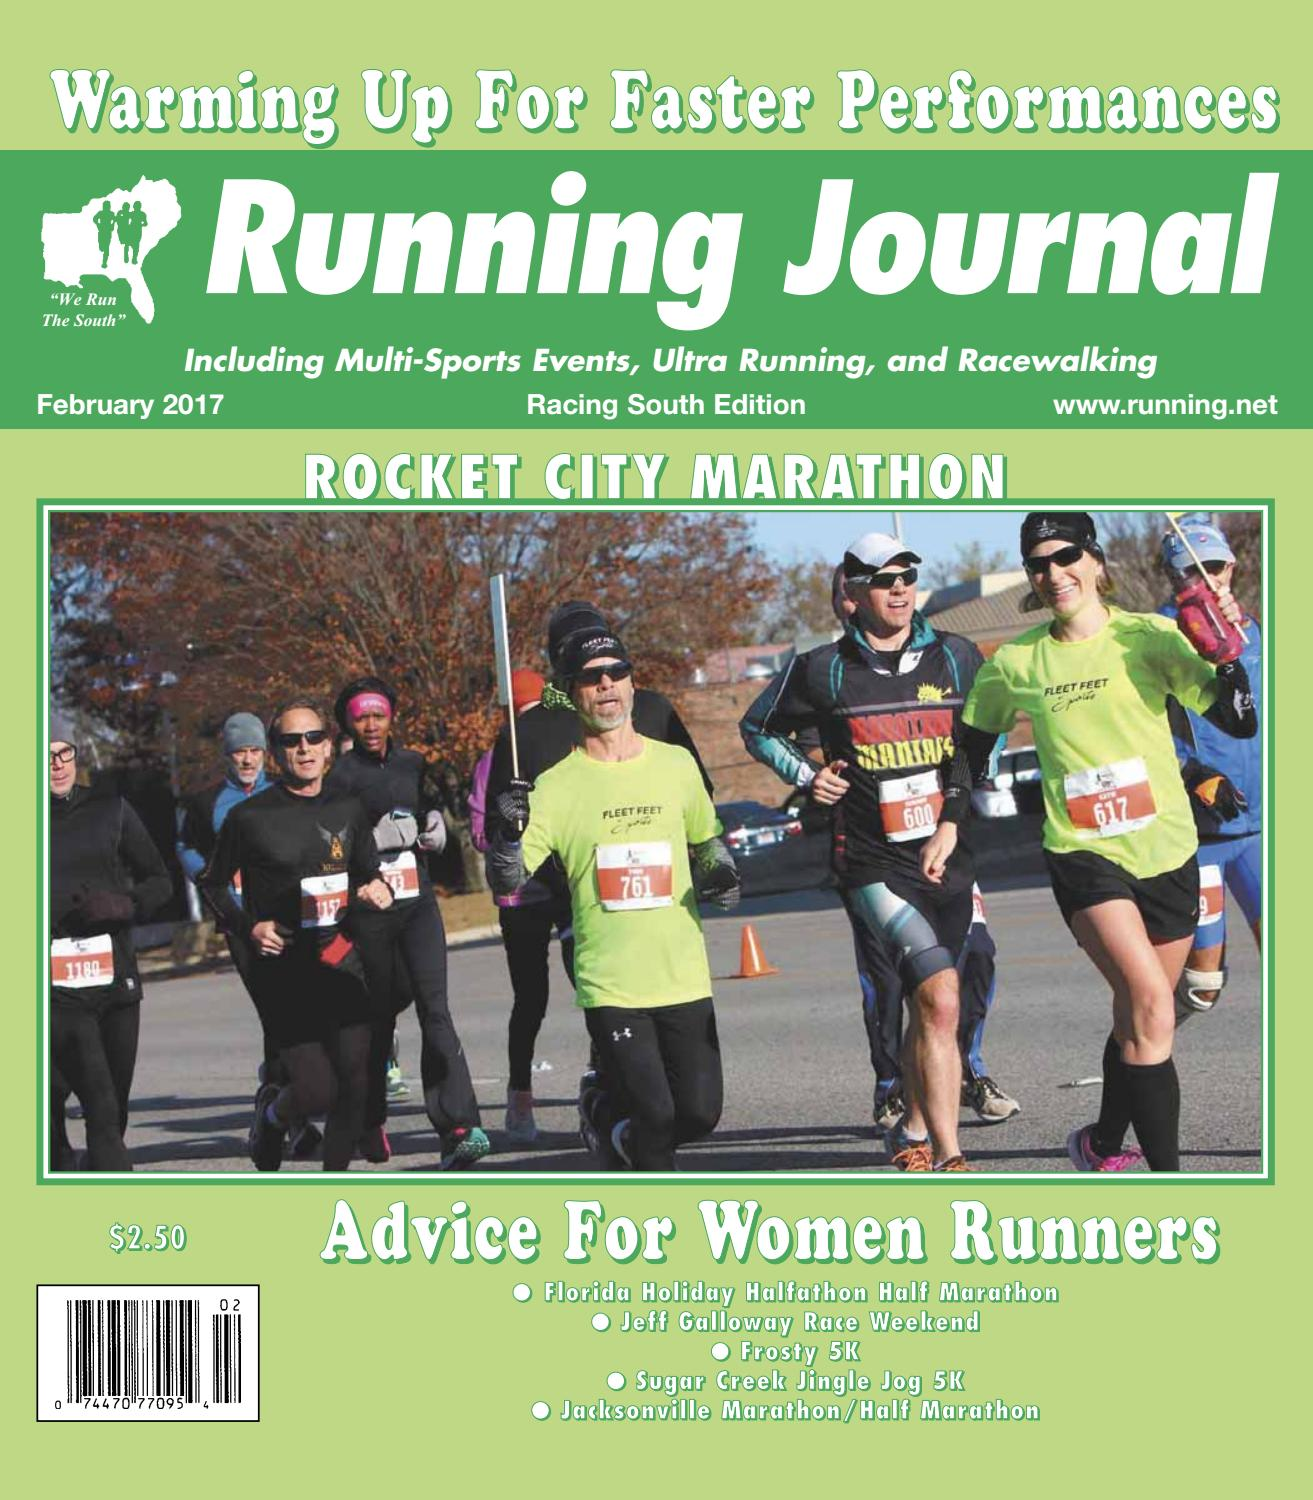 f24eedd20b RJ1702 by Running Journal - issuu